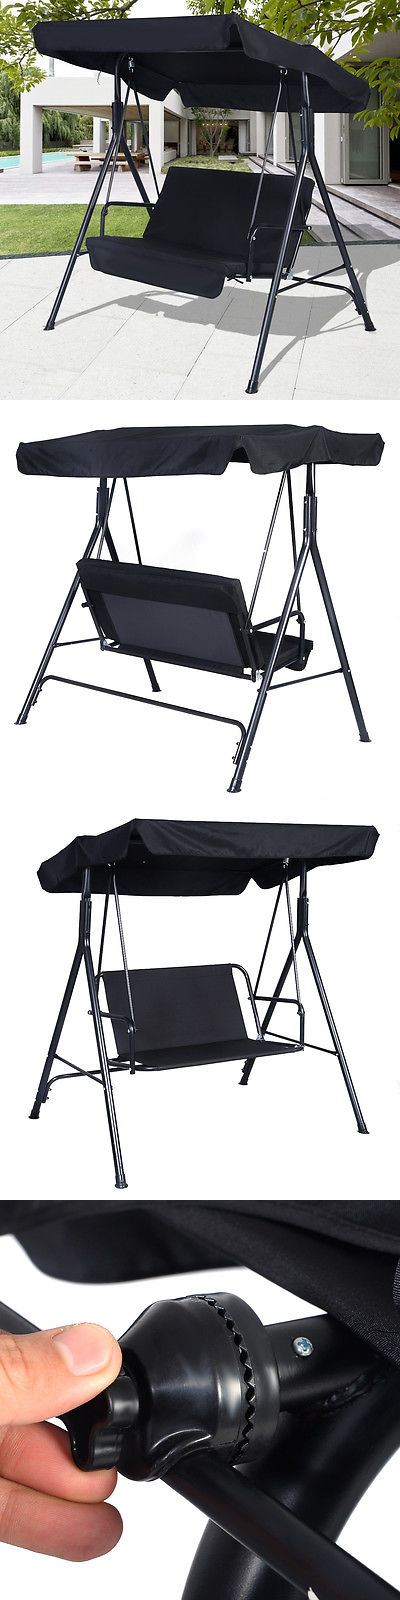 Swings 79700: Black Outdoor Patio Swing Canopy Awning Yard Furniture  Hammock Steel 2 Person